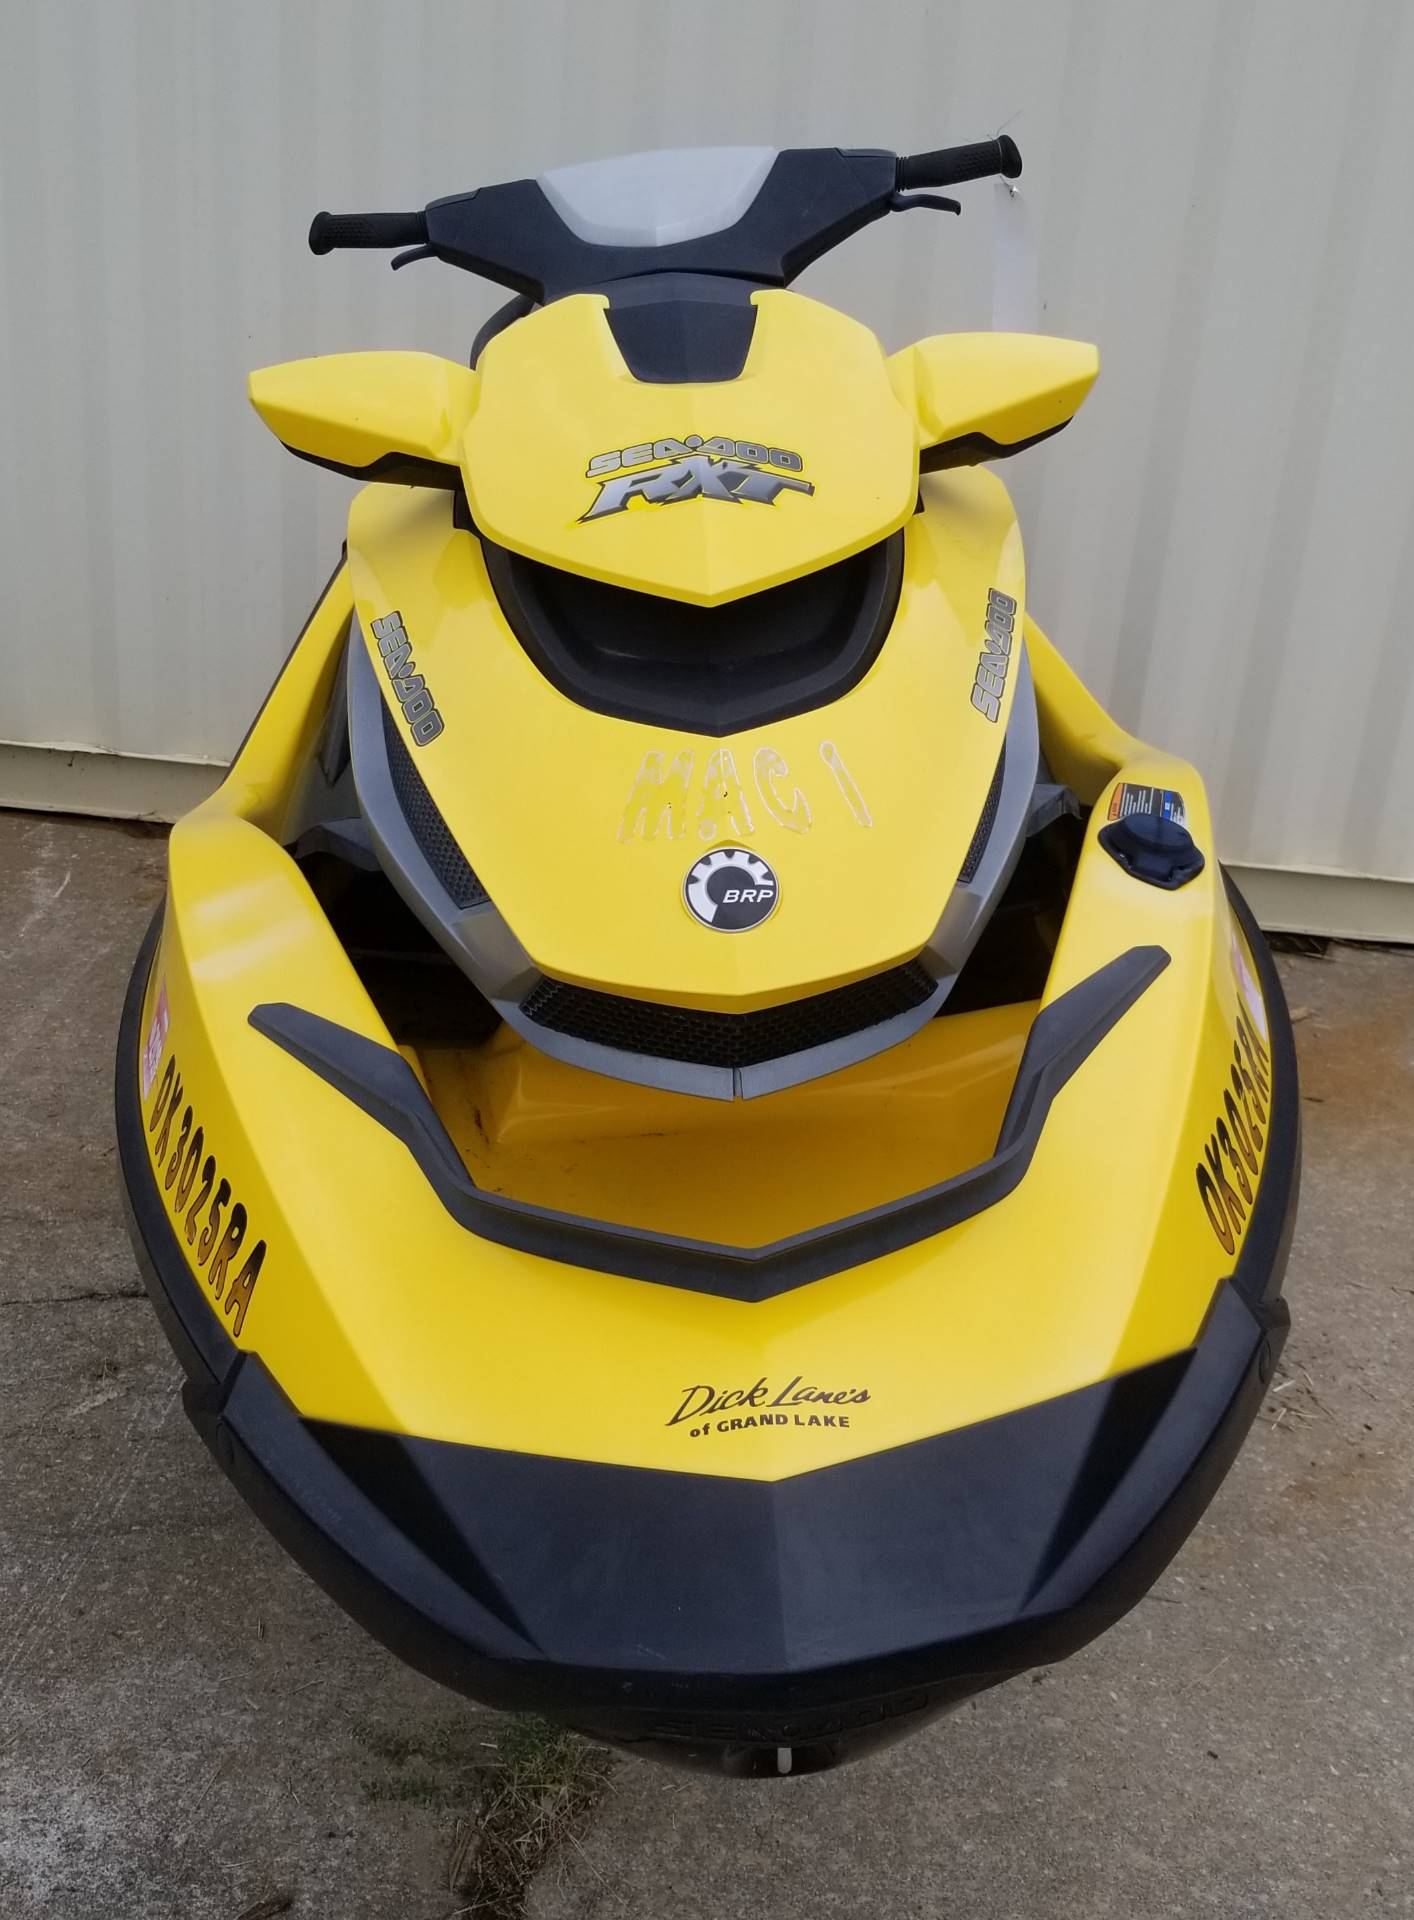 2009 Sea-Doo RXT IS 260 3